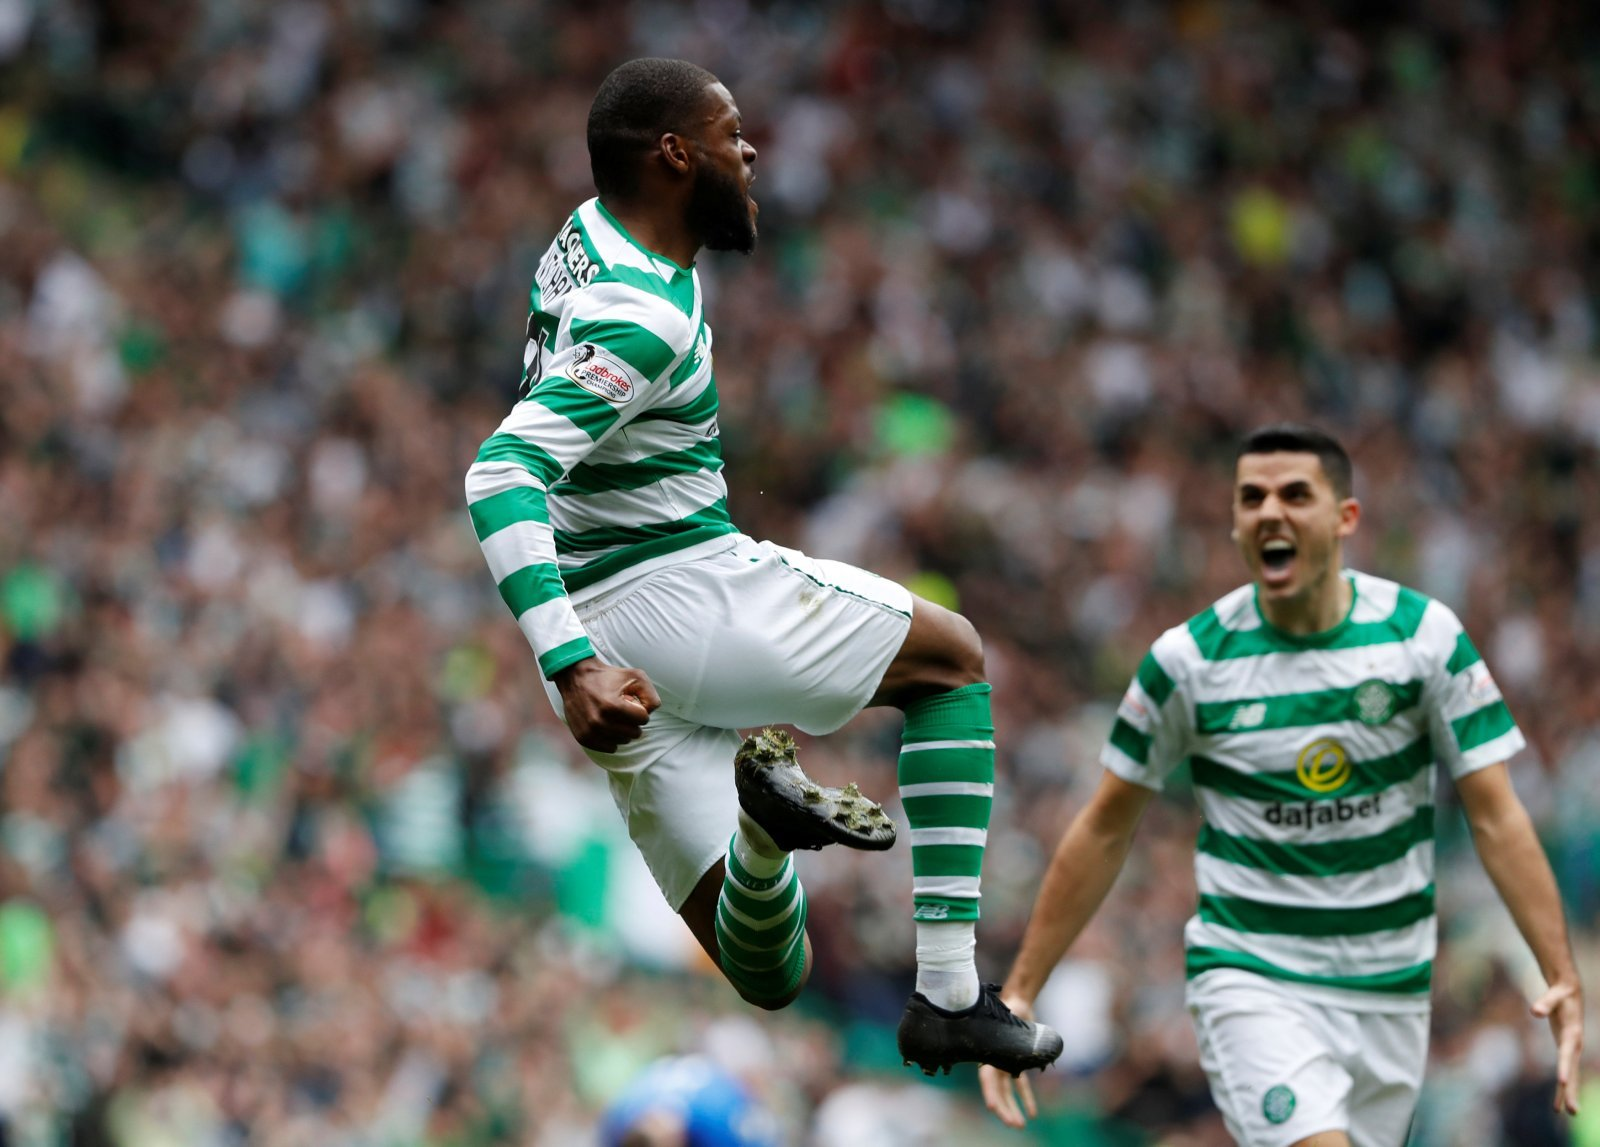 Southampton should sign Olivier Ntcham before it's too late